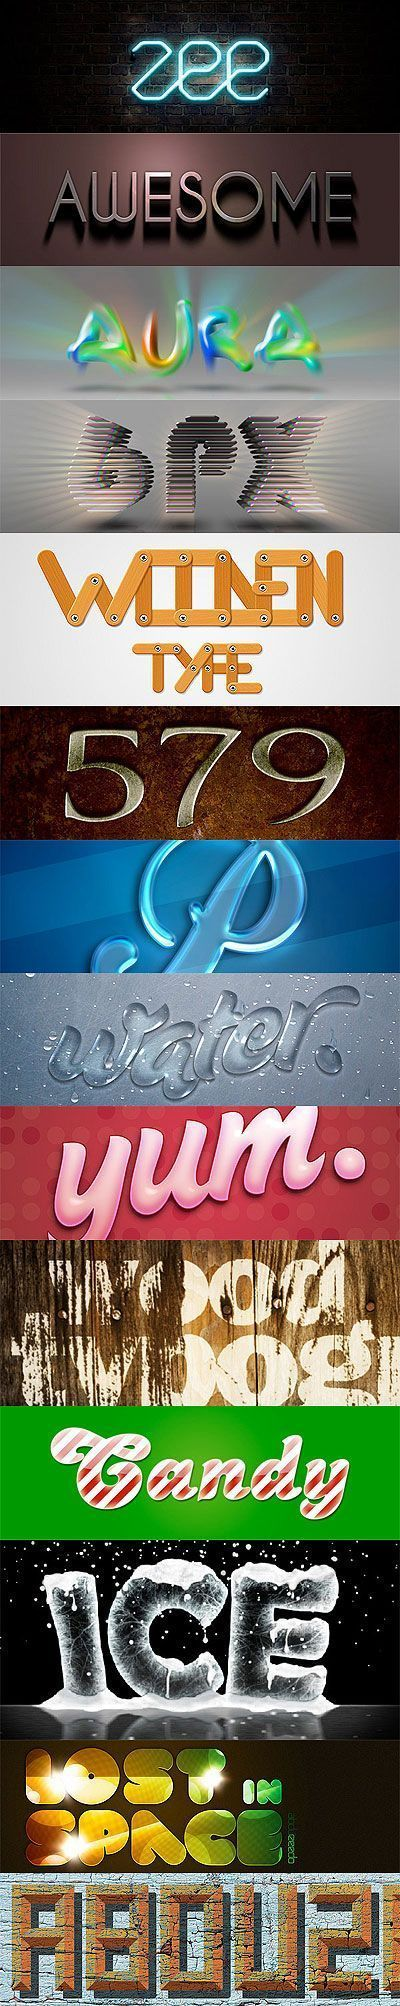 A gallery of eye popping photoshop text effects tutorials 20 eye popping photoshop text effects tutorials baditri Choice Image